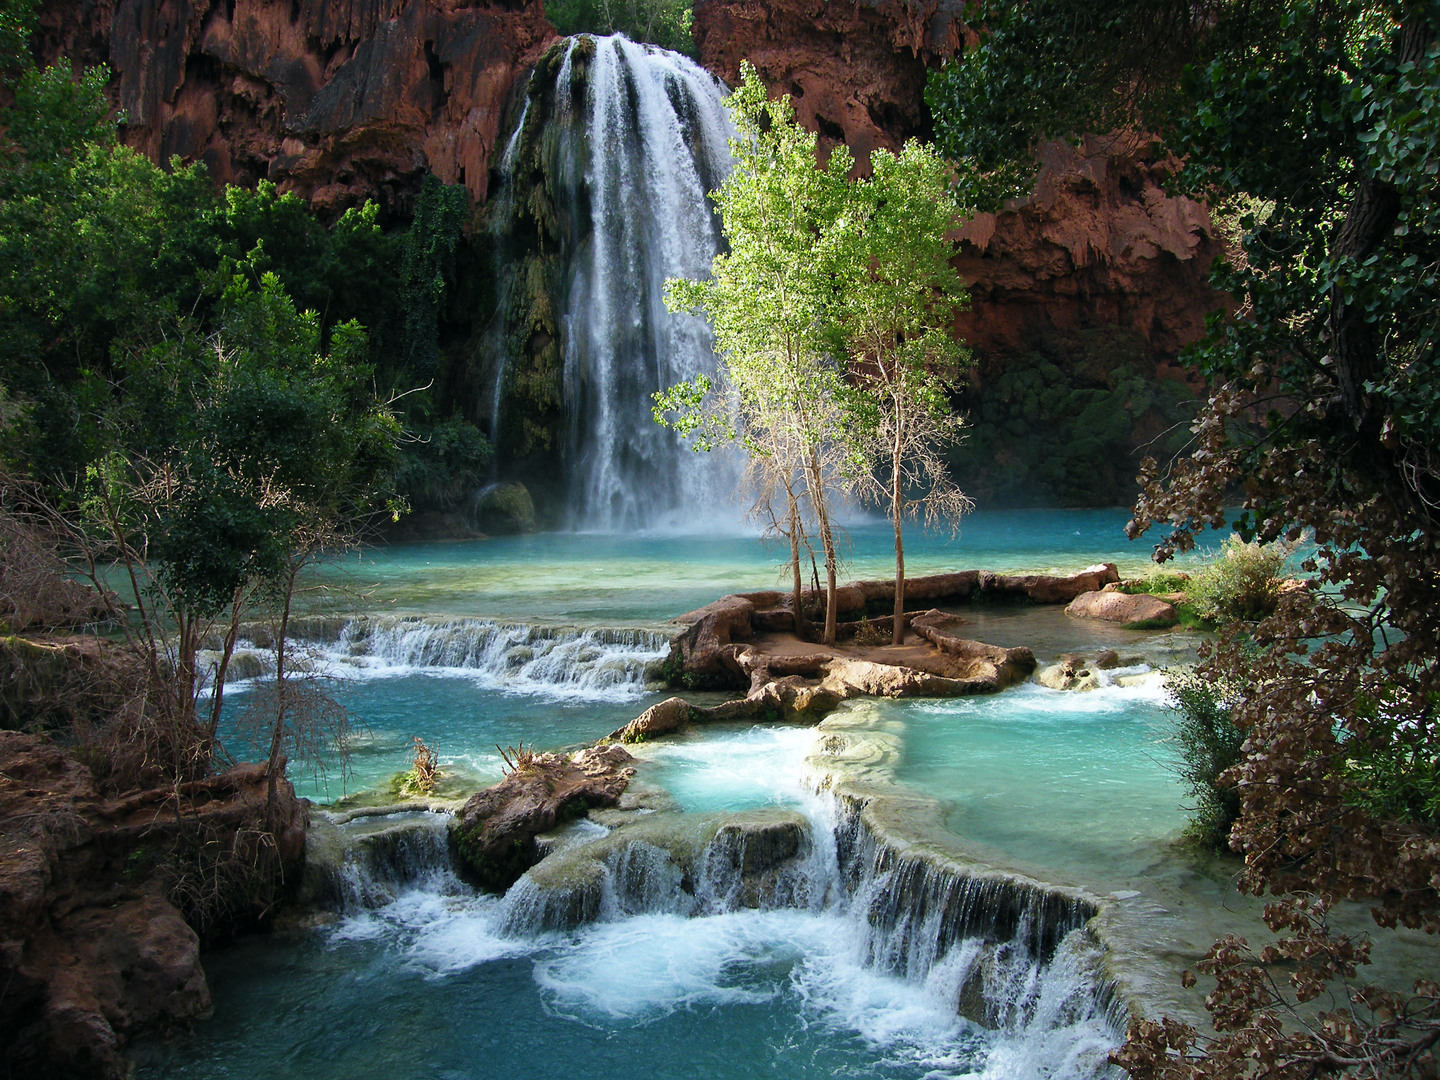 helicopter havasu falls with Places To See on Places To See furthermore Havasupai Lodge besides 5 Best Swimming Spots In The World together with Americas Best Swimming Holes 19 likewise LocationPhotoDirectLink G31371 D126794 I67645974 Havasupai Falls Supai Arizona.